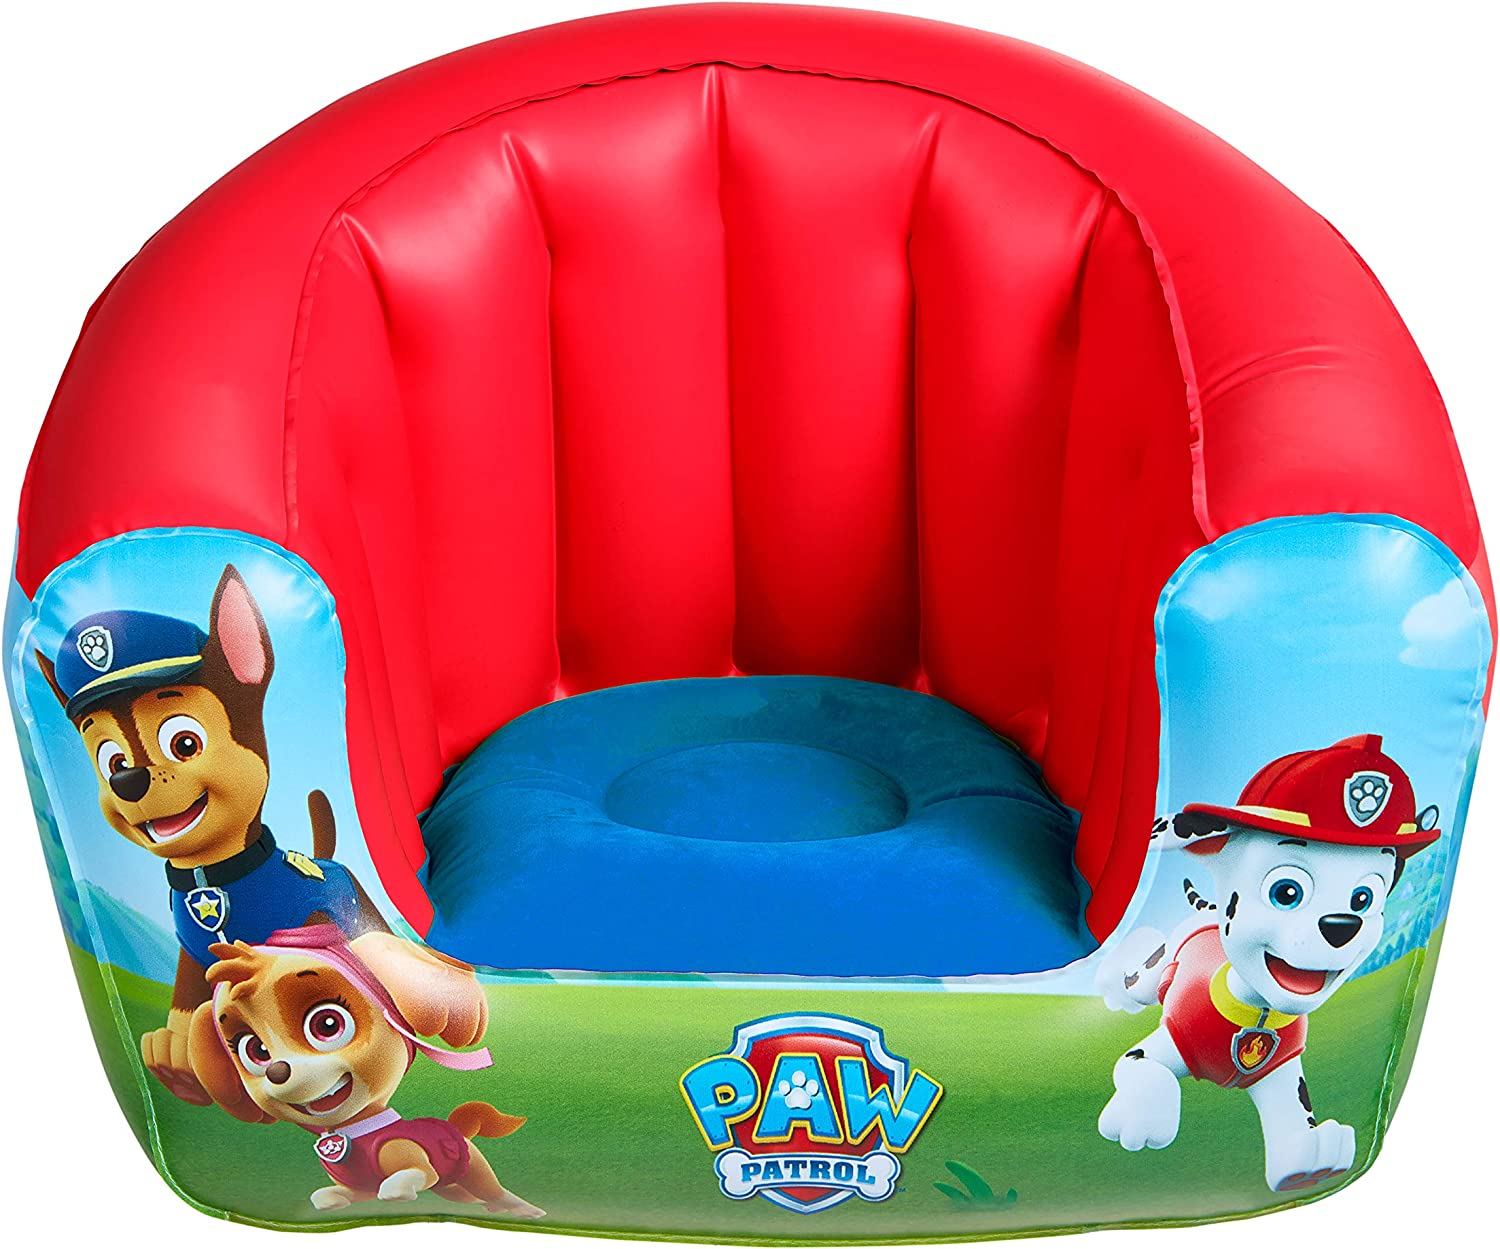 Sillón Hinchable Infantil, PAW PATROL – Color Blue/Red (Worlds Apart 282PPW)